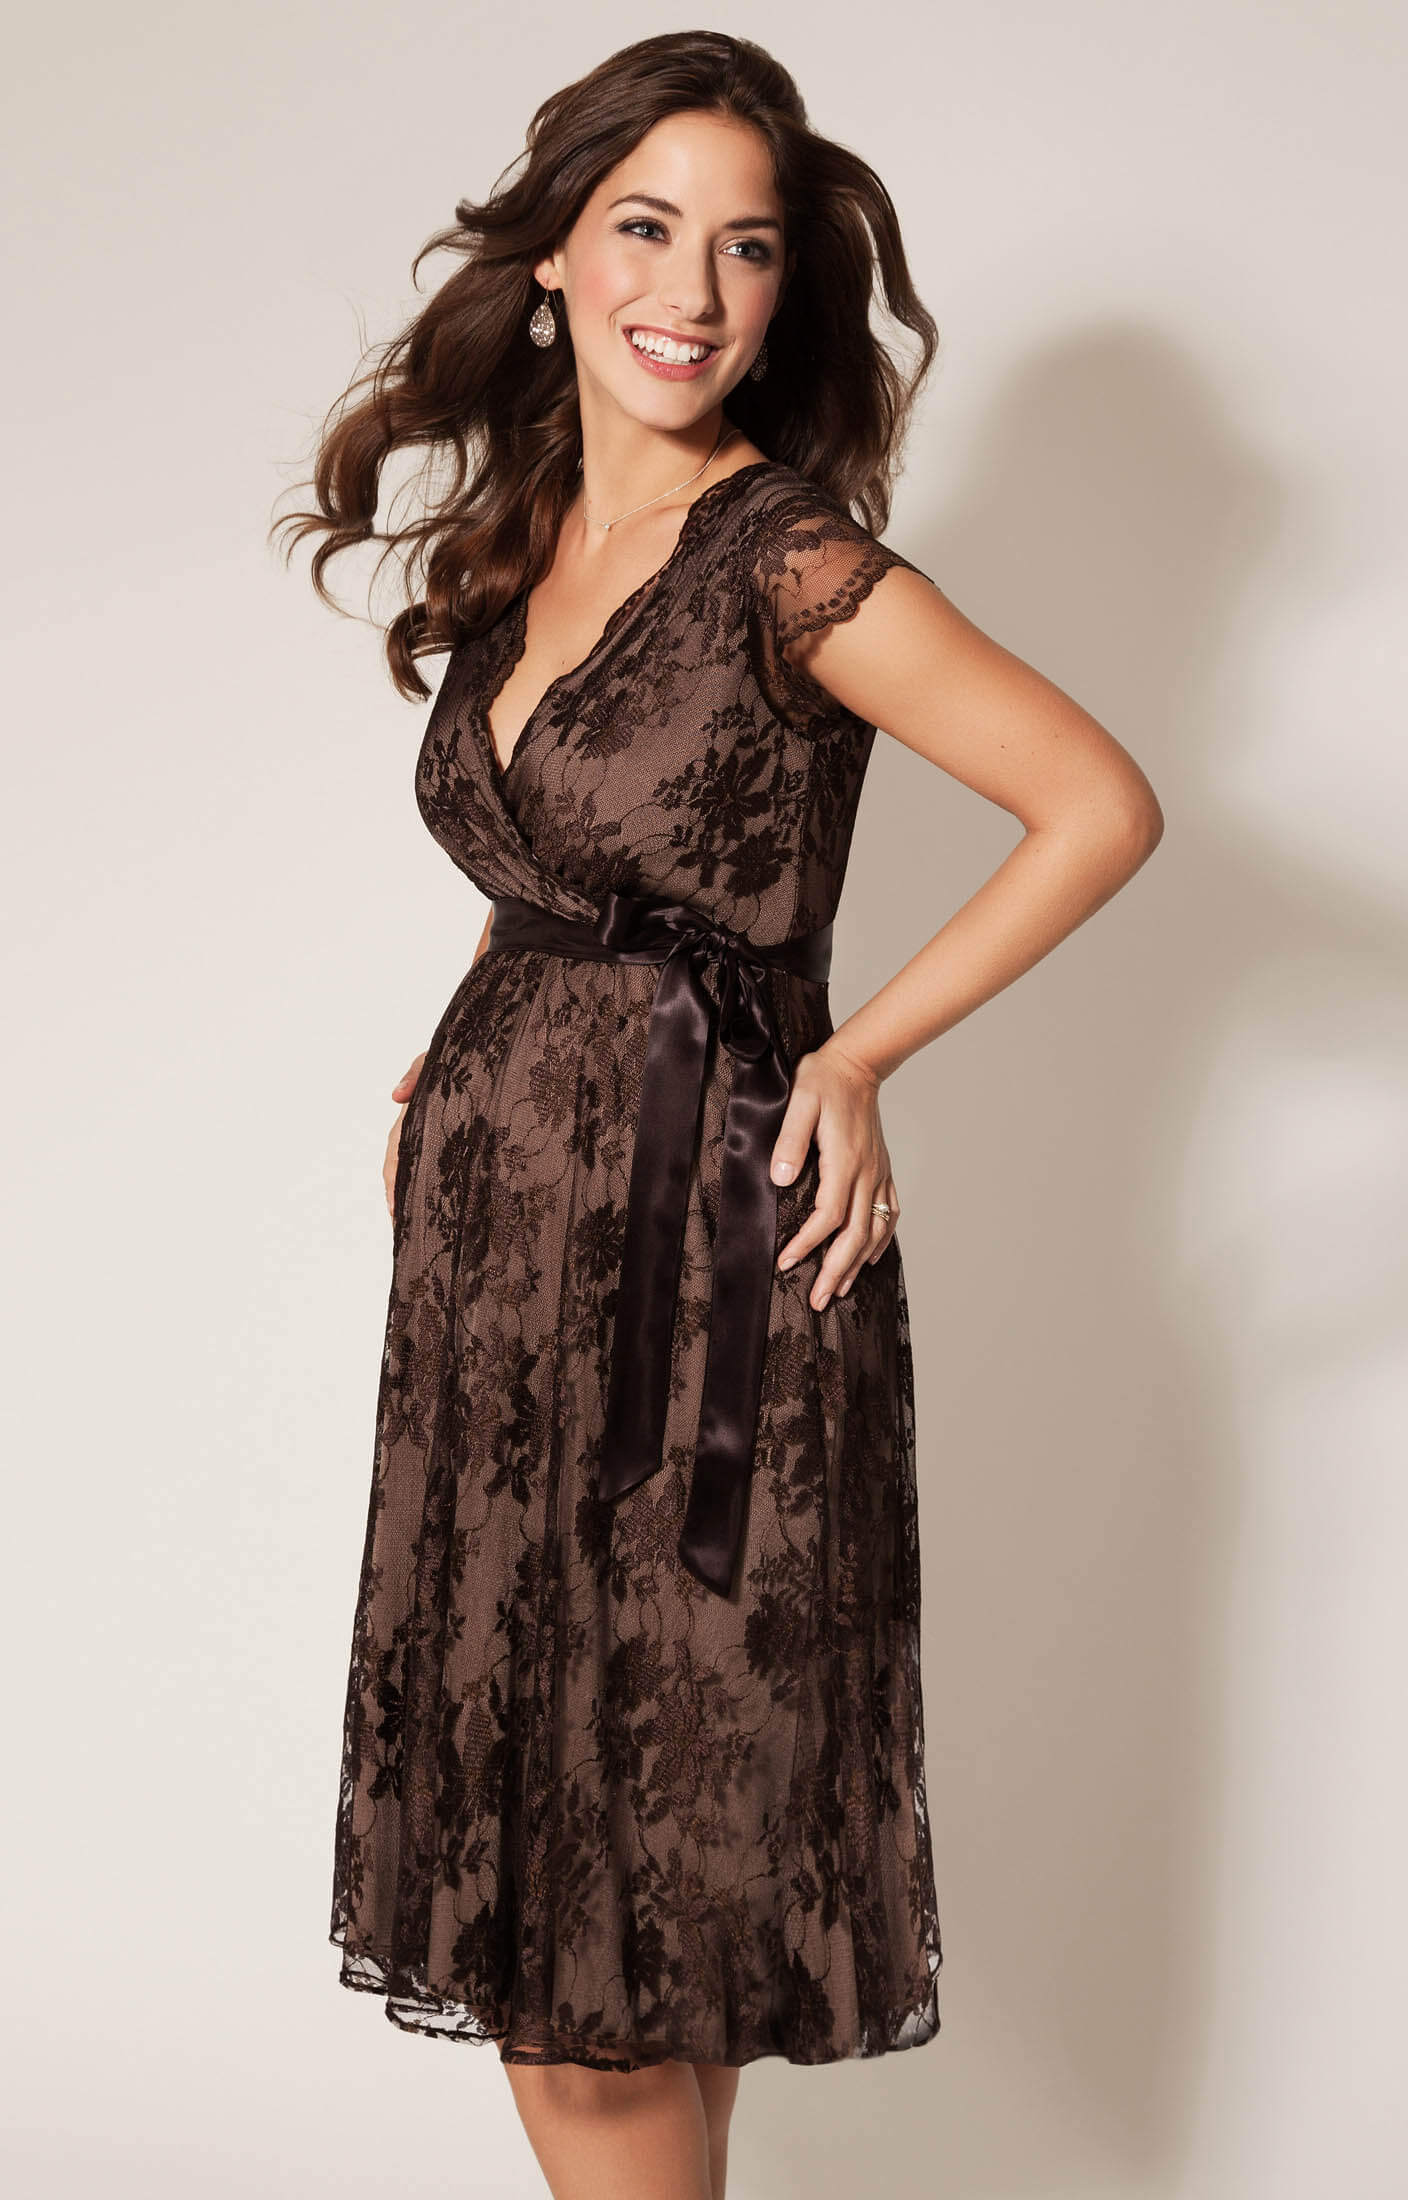 eden maternity gown short chocolate maternity wedding dresses evening wear and party clothes. Black Bedroom Furniture Sets. Home Design Ideas